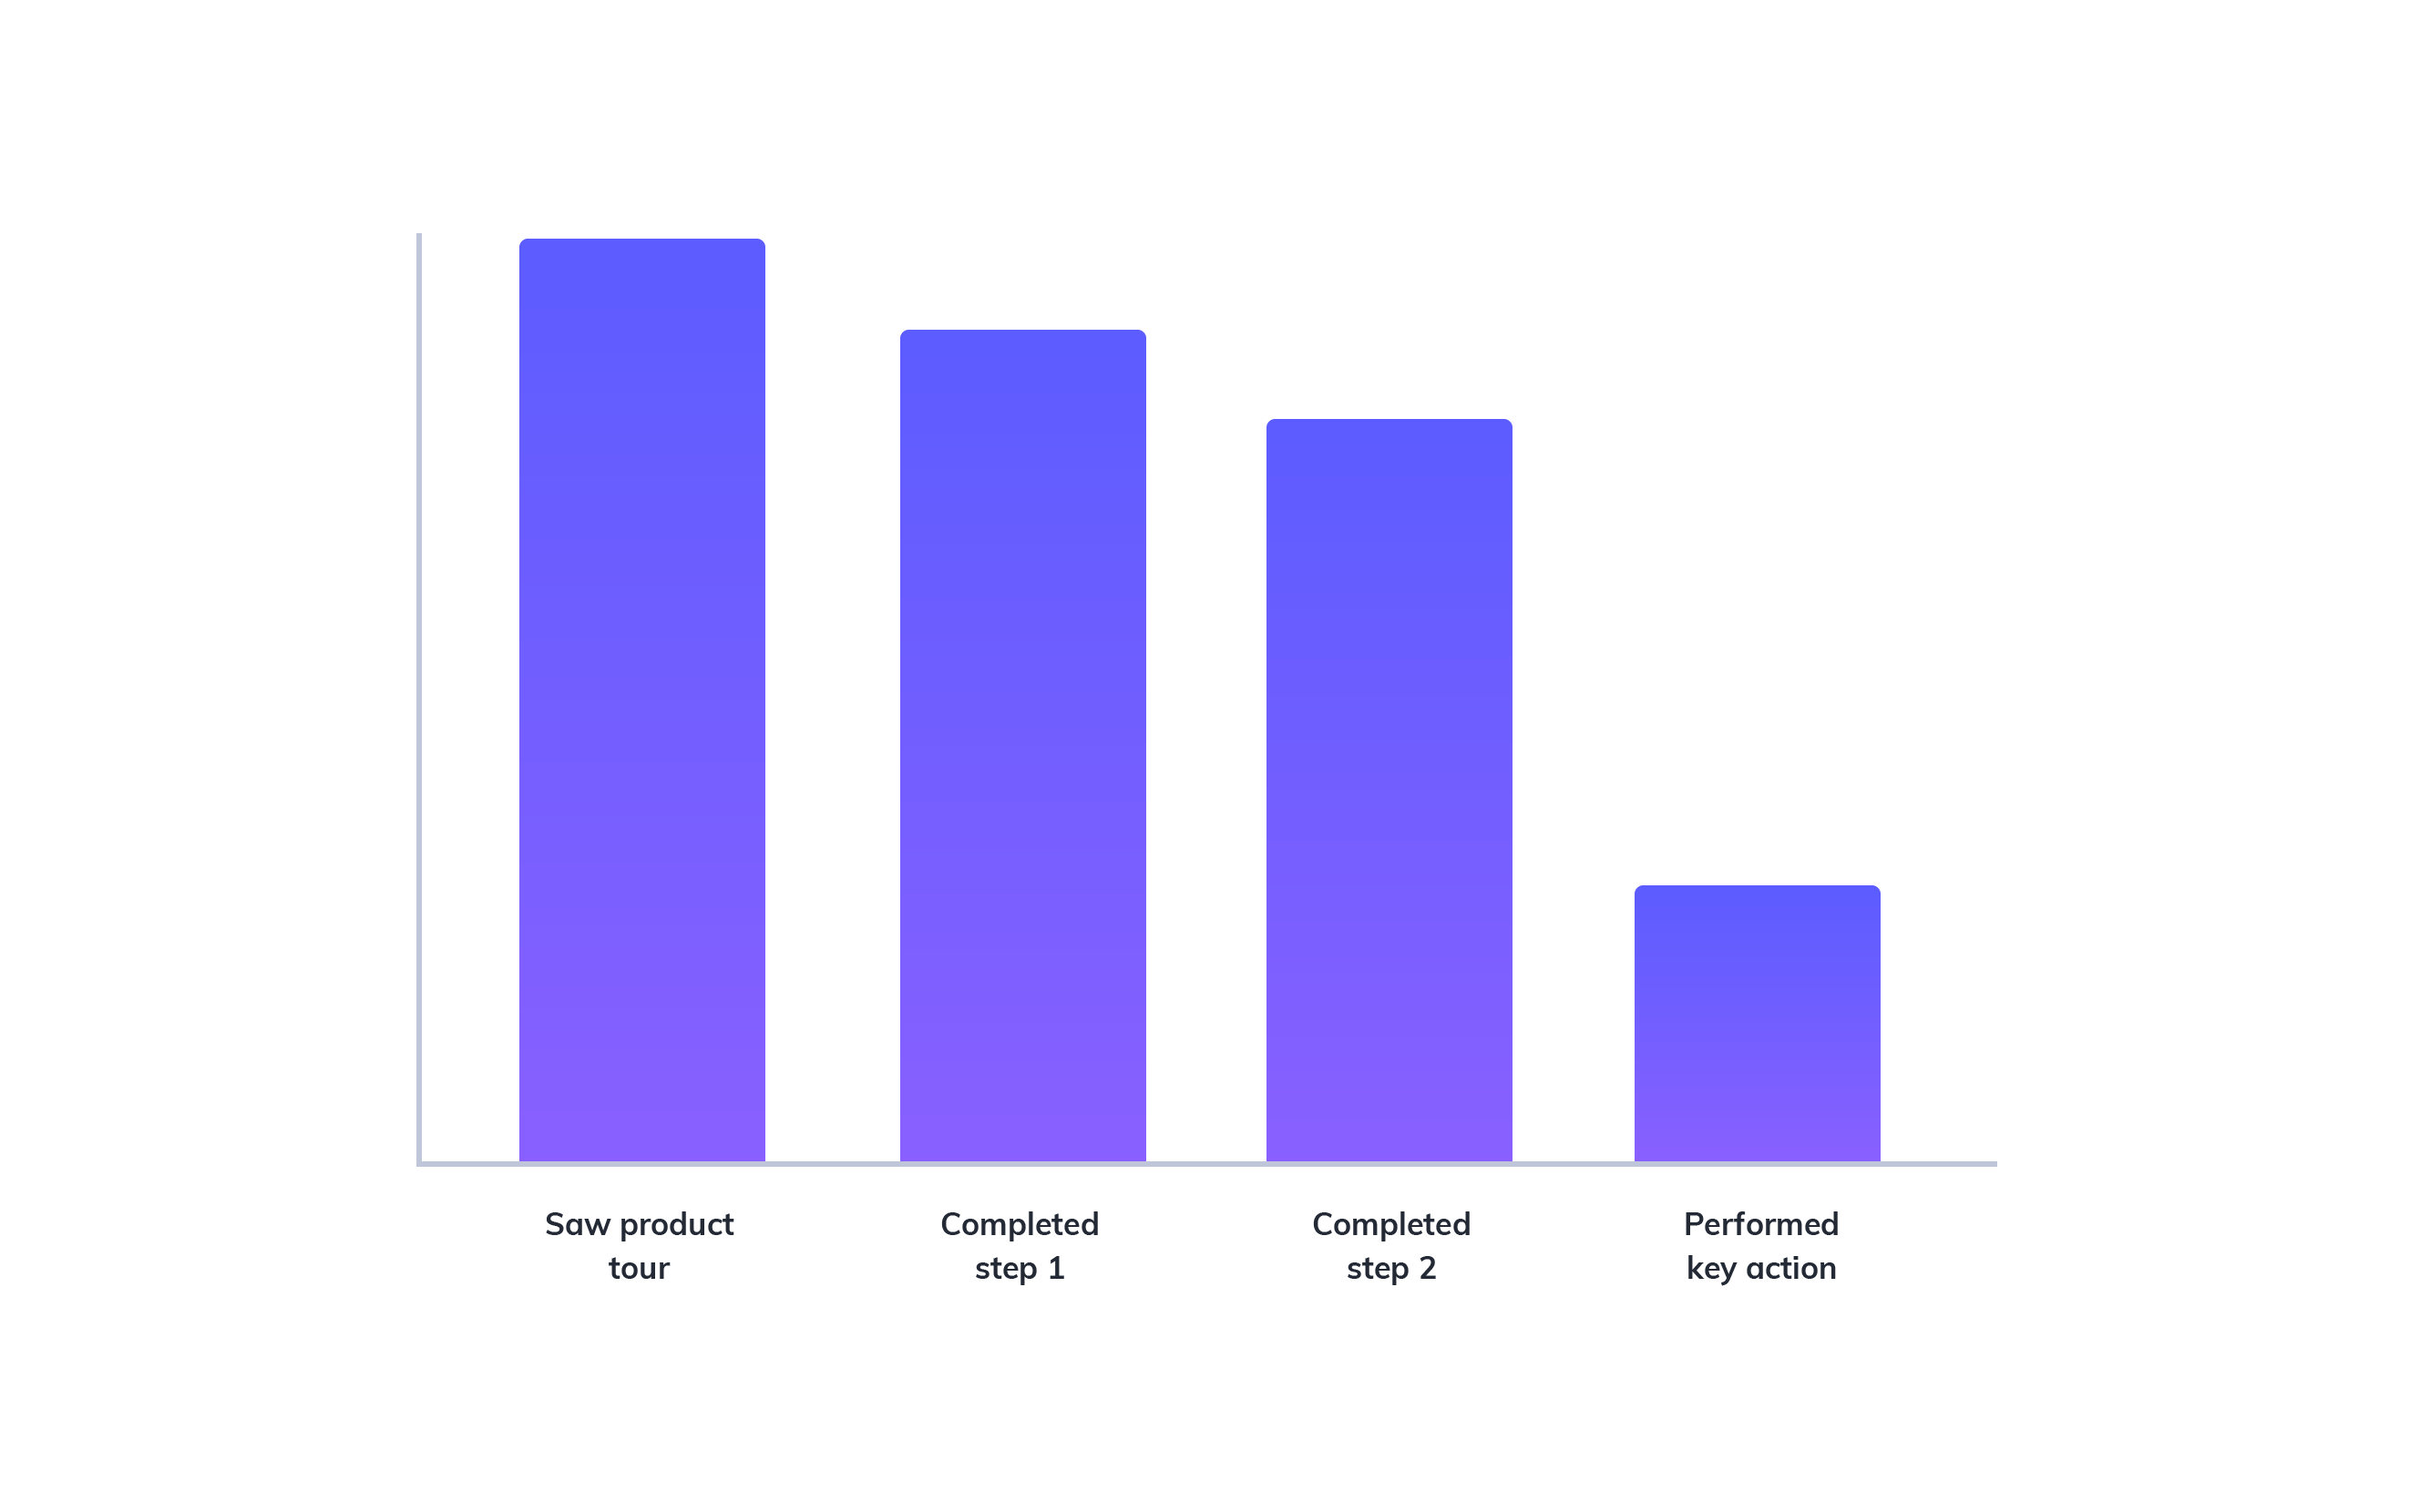 this is a bar graph showing the analytics result of an example product tour in which users abandon the product tour flow after completing the second step